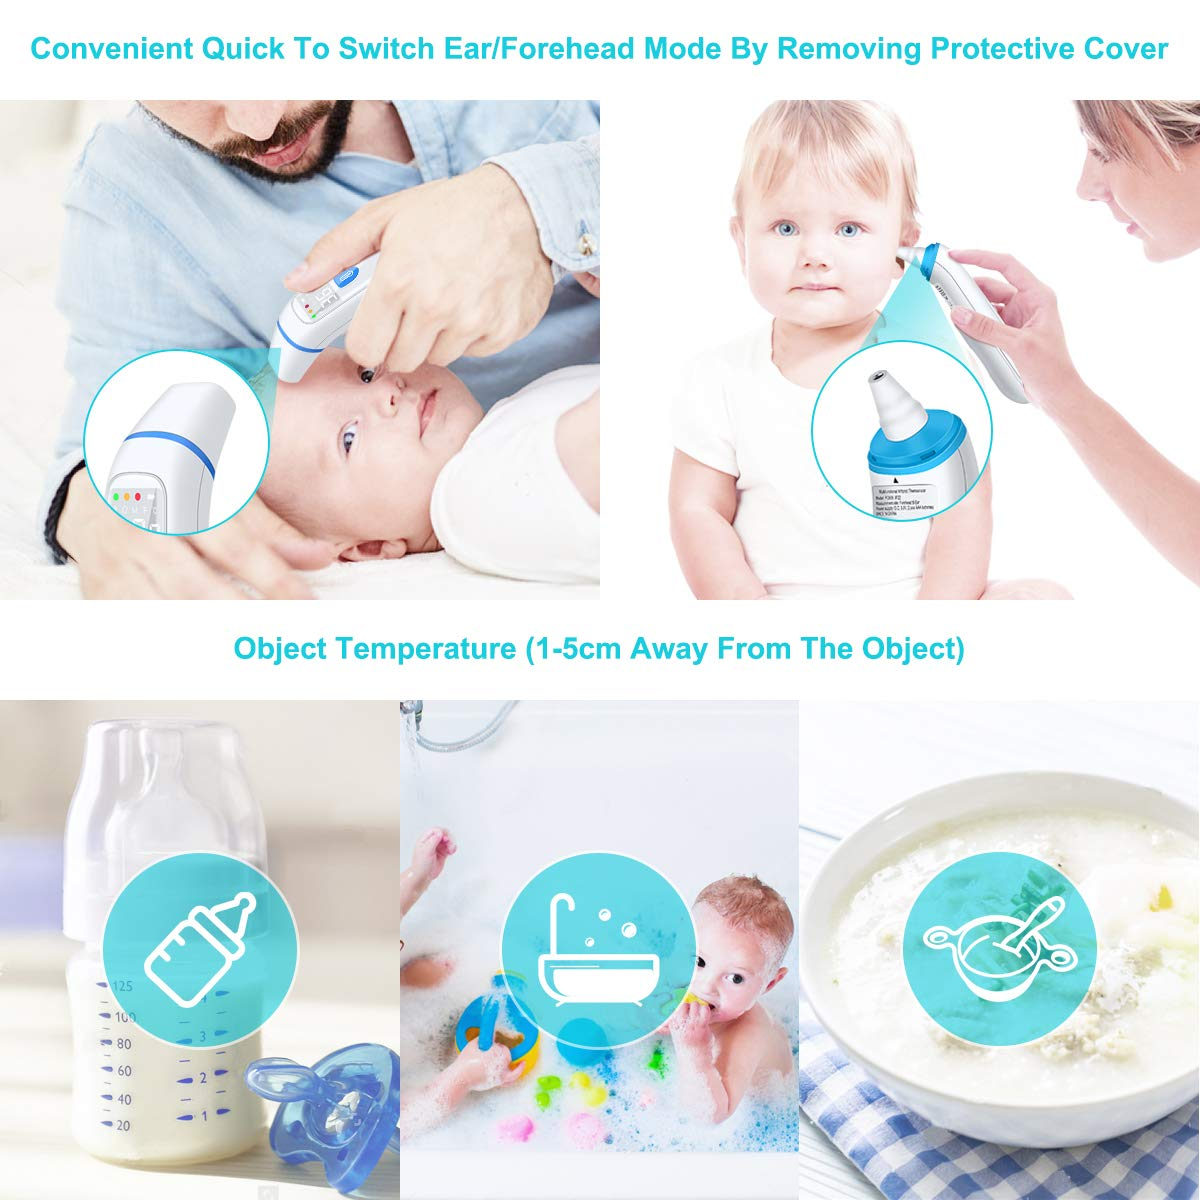 Upgrade Ear Forehead Thermometer Digital Infrared Medical Professional Accurate Precision Baby Kids Adult 5 in 1 Eye High Temperature Fever Alarm Warning Best Protection White Backlight Head